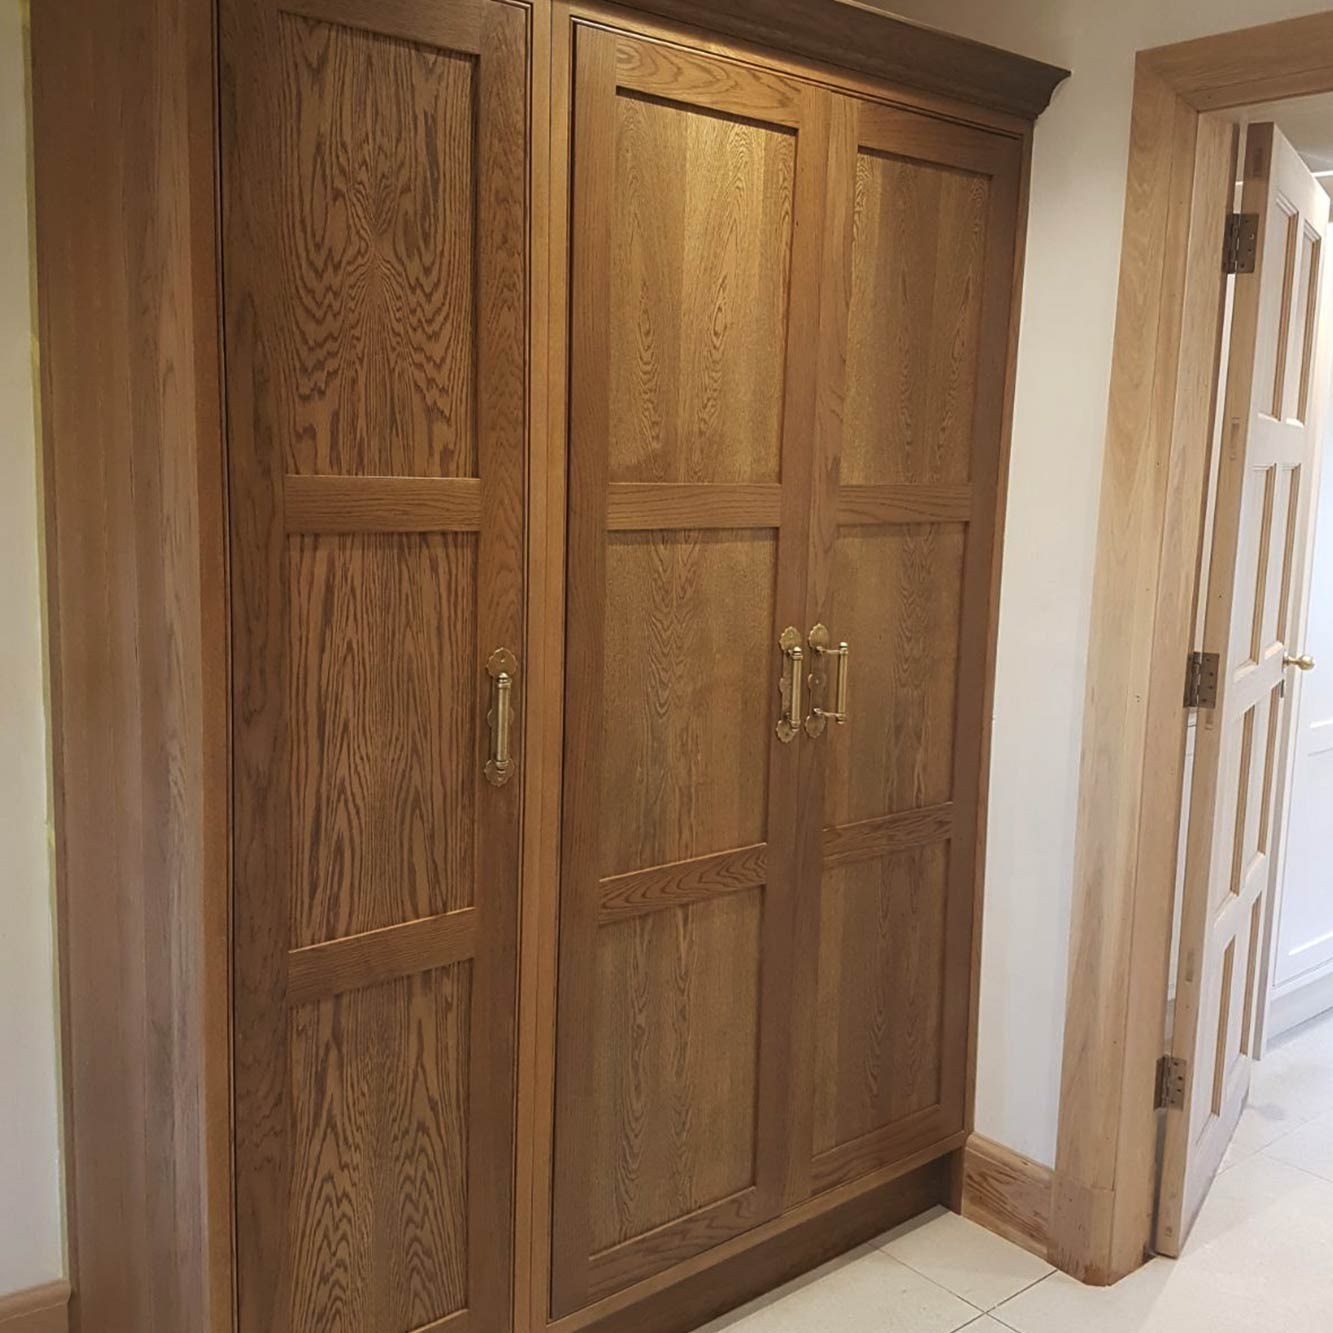 Cooper-Bespoke-Joinery-Bespoke-fitted-boot-room-utility-wooden-artisan-traditional